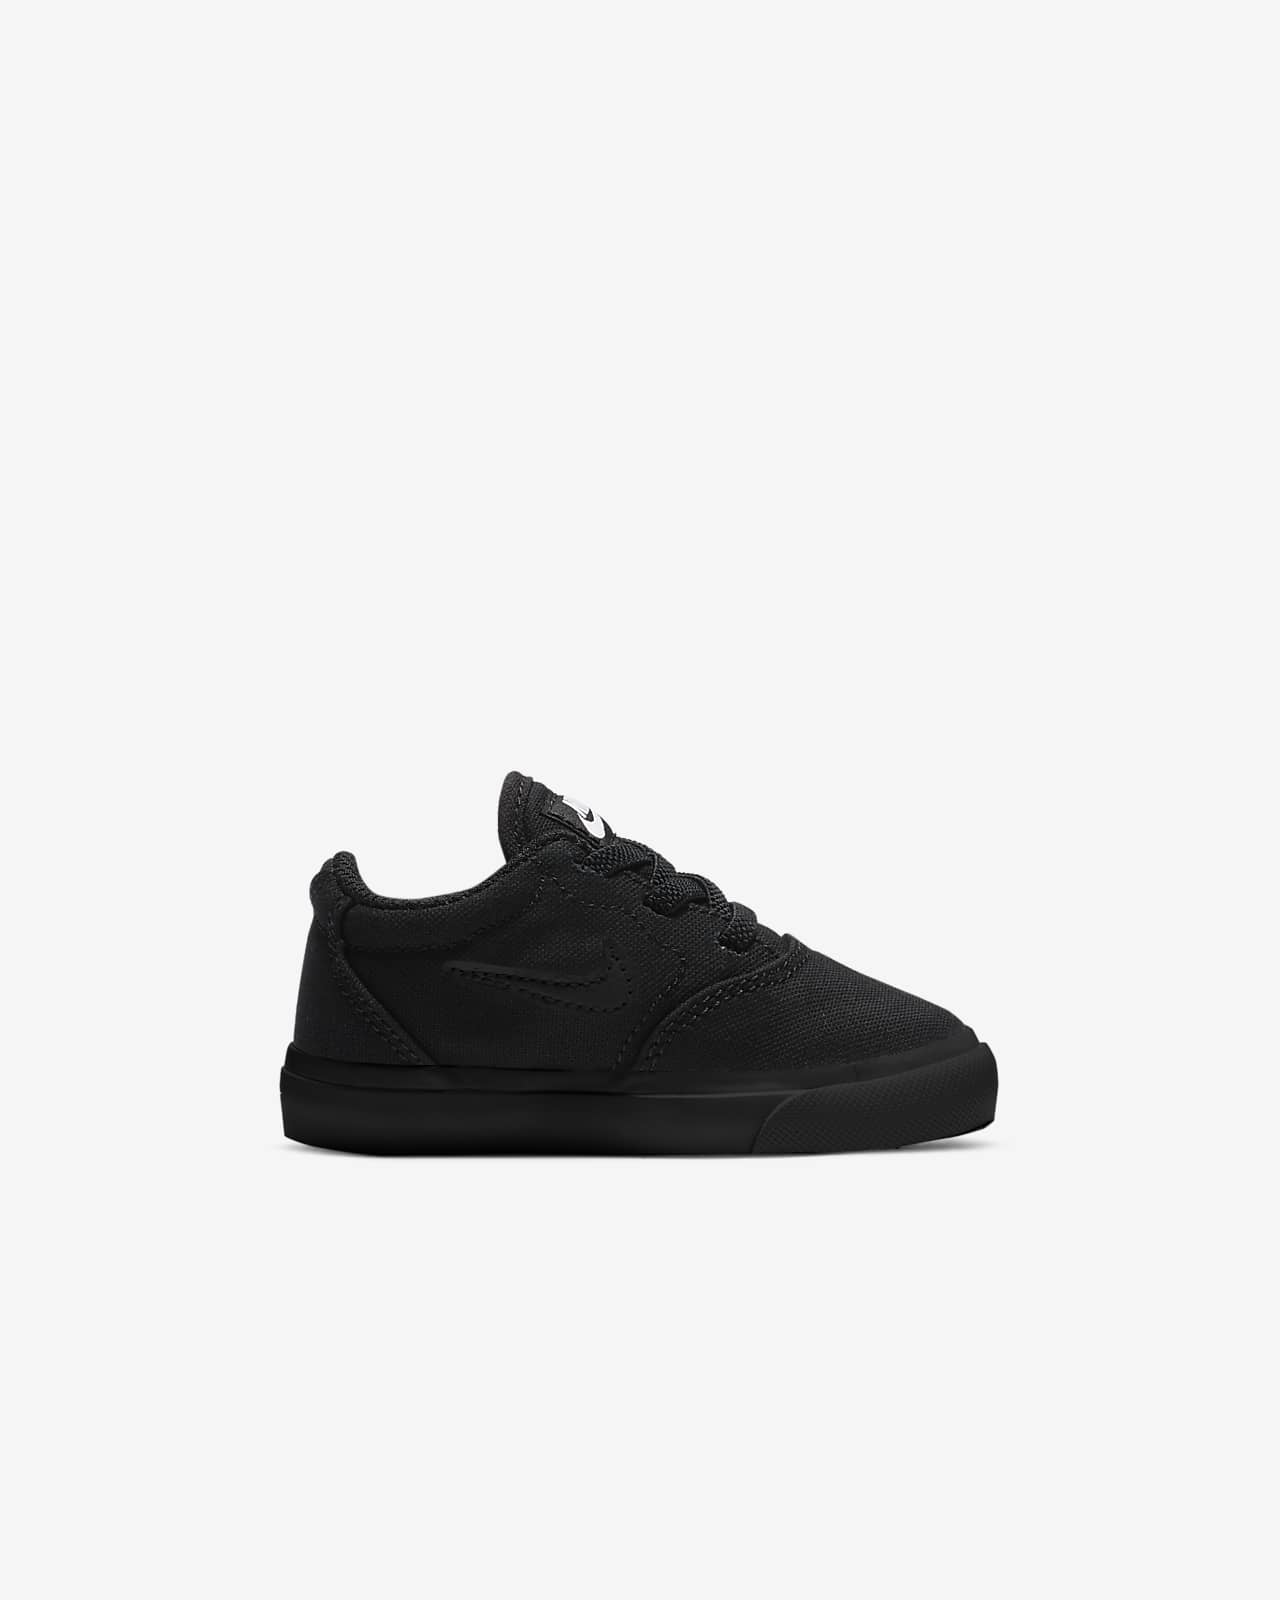 Nike SB Charge Canvas Baby/Toddler